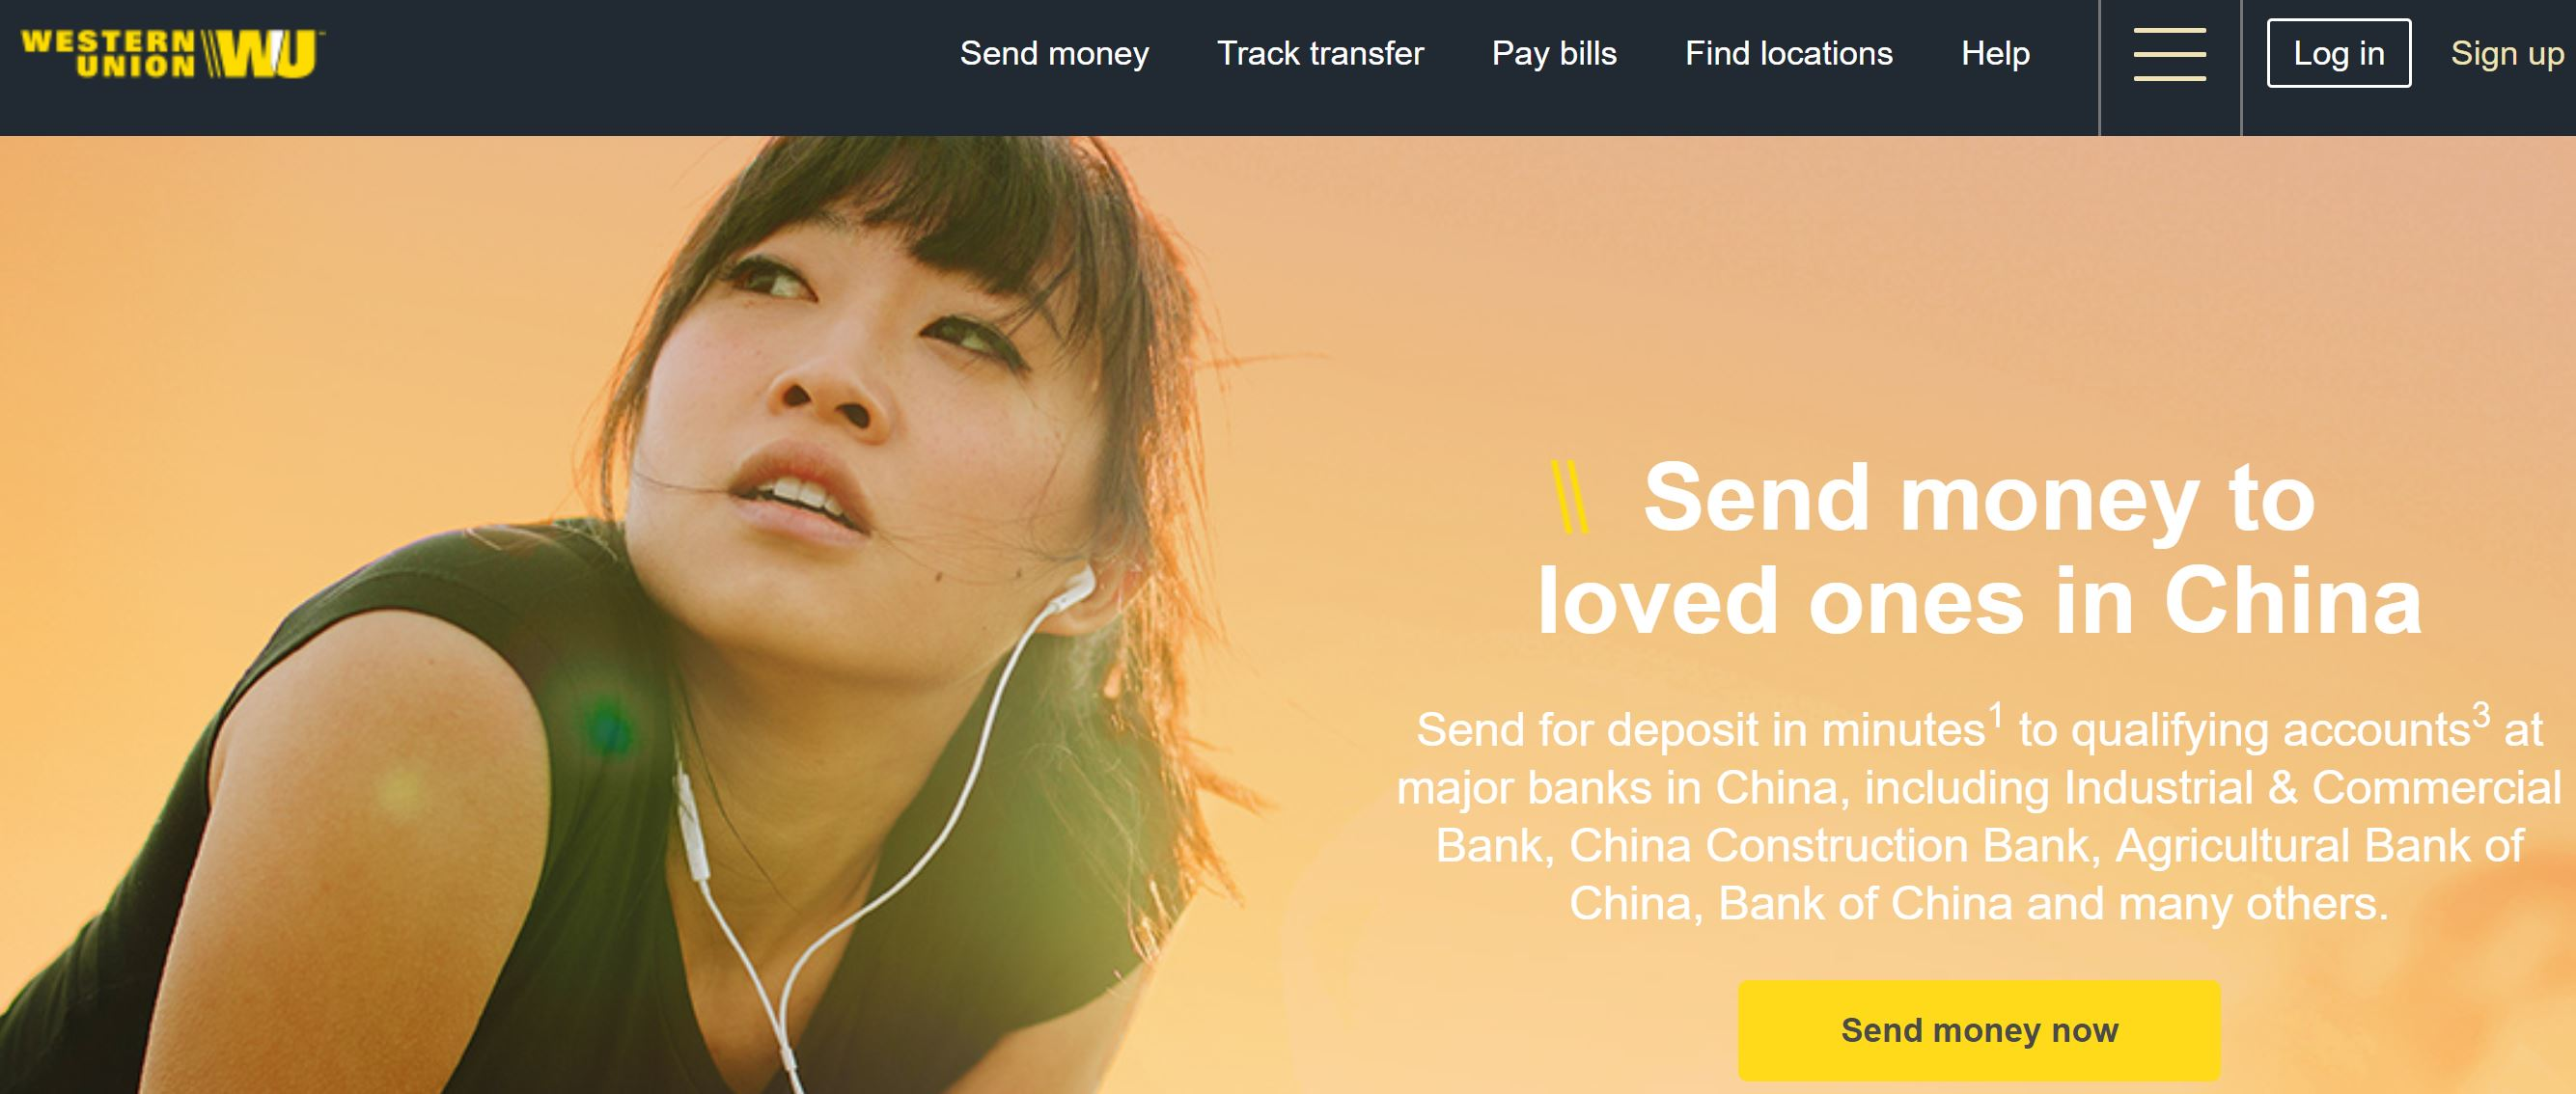 Money Transfer To China Review And Tips